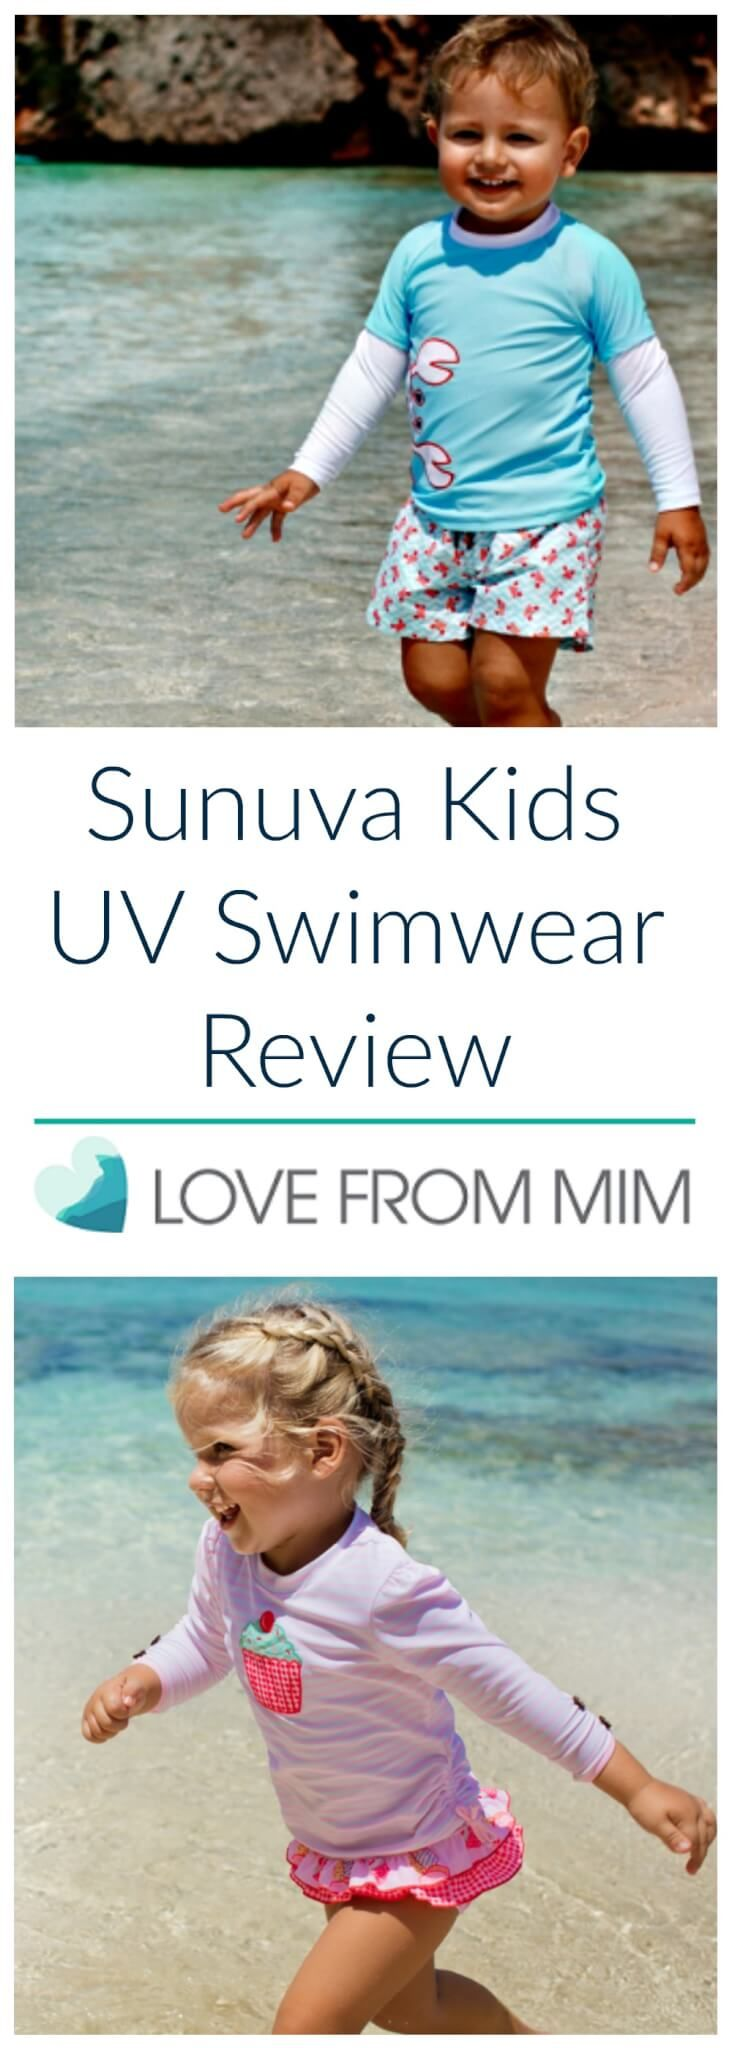 Sunuva Kids UV Swimwear Review - lovefrommim.com Love from Mim Kids Swimwear Review Kids Swimmers Review Sunuva Blog Review Sunuva Review Teaching kids to swim Best kids swimwear Safest Kids Swimwear